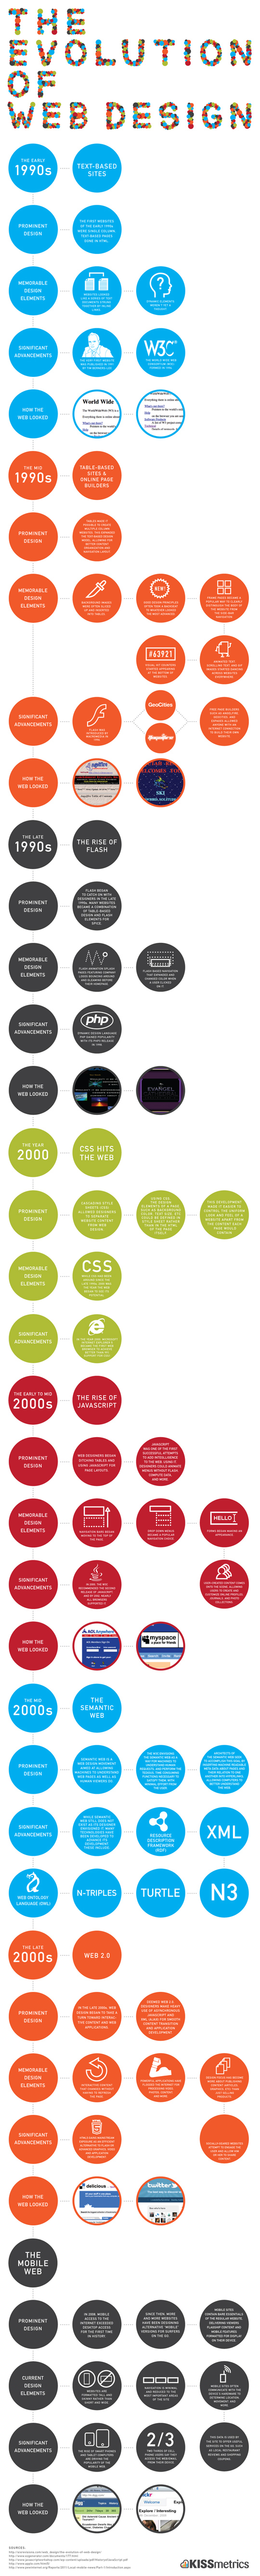 The Evolutionary Tale Of Web Design (Infographic) 6